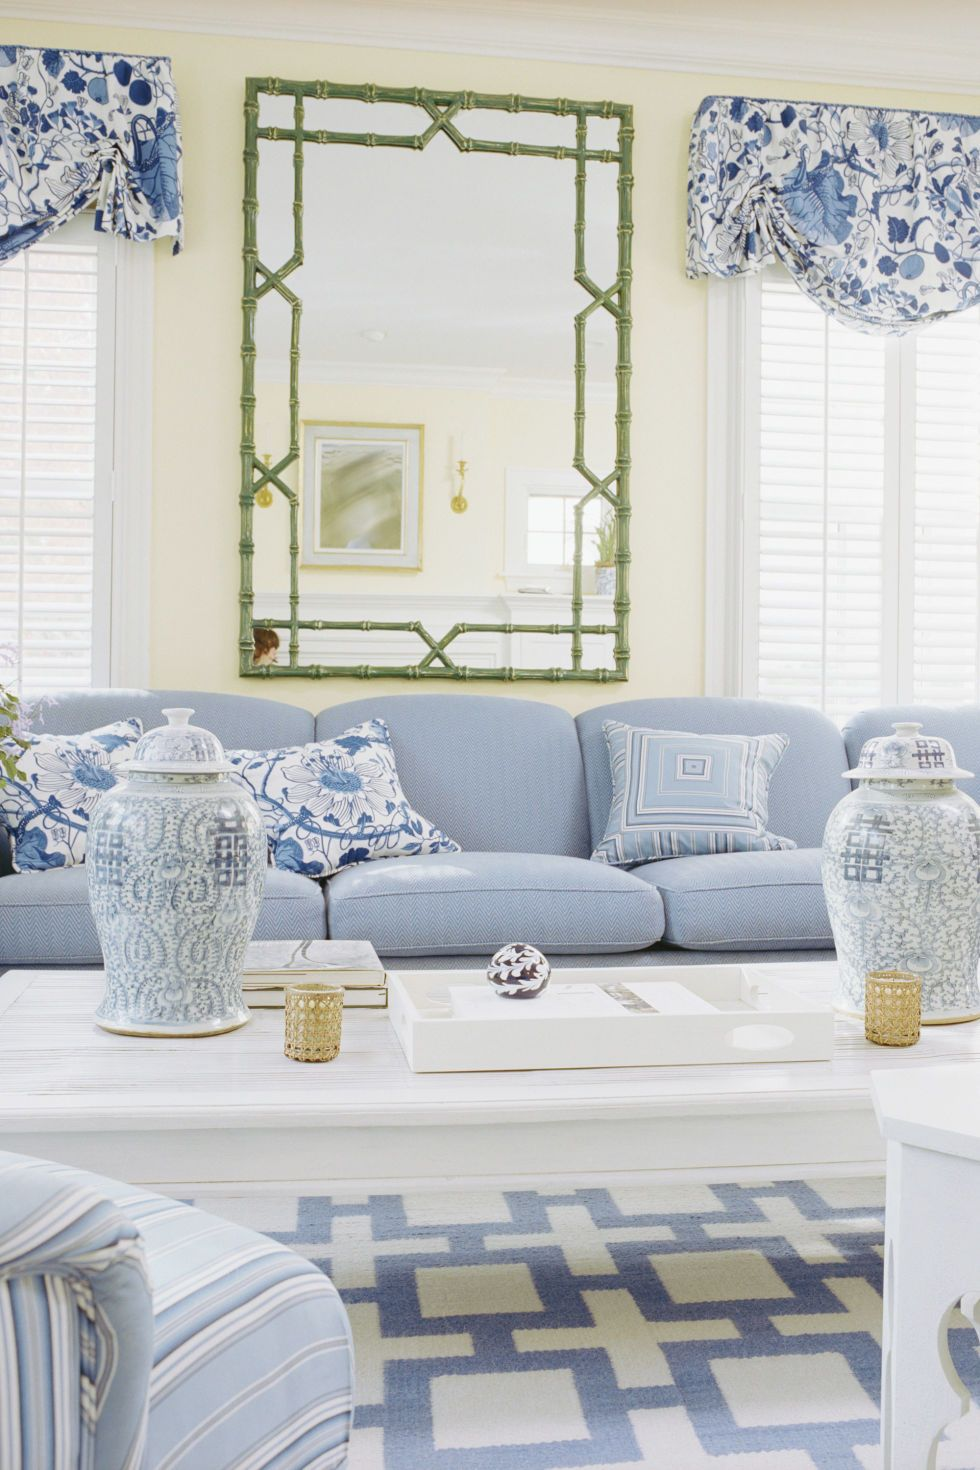 23 Reasons Why Blue and White Is The Most Classic Color ...